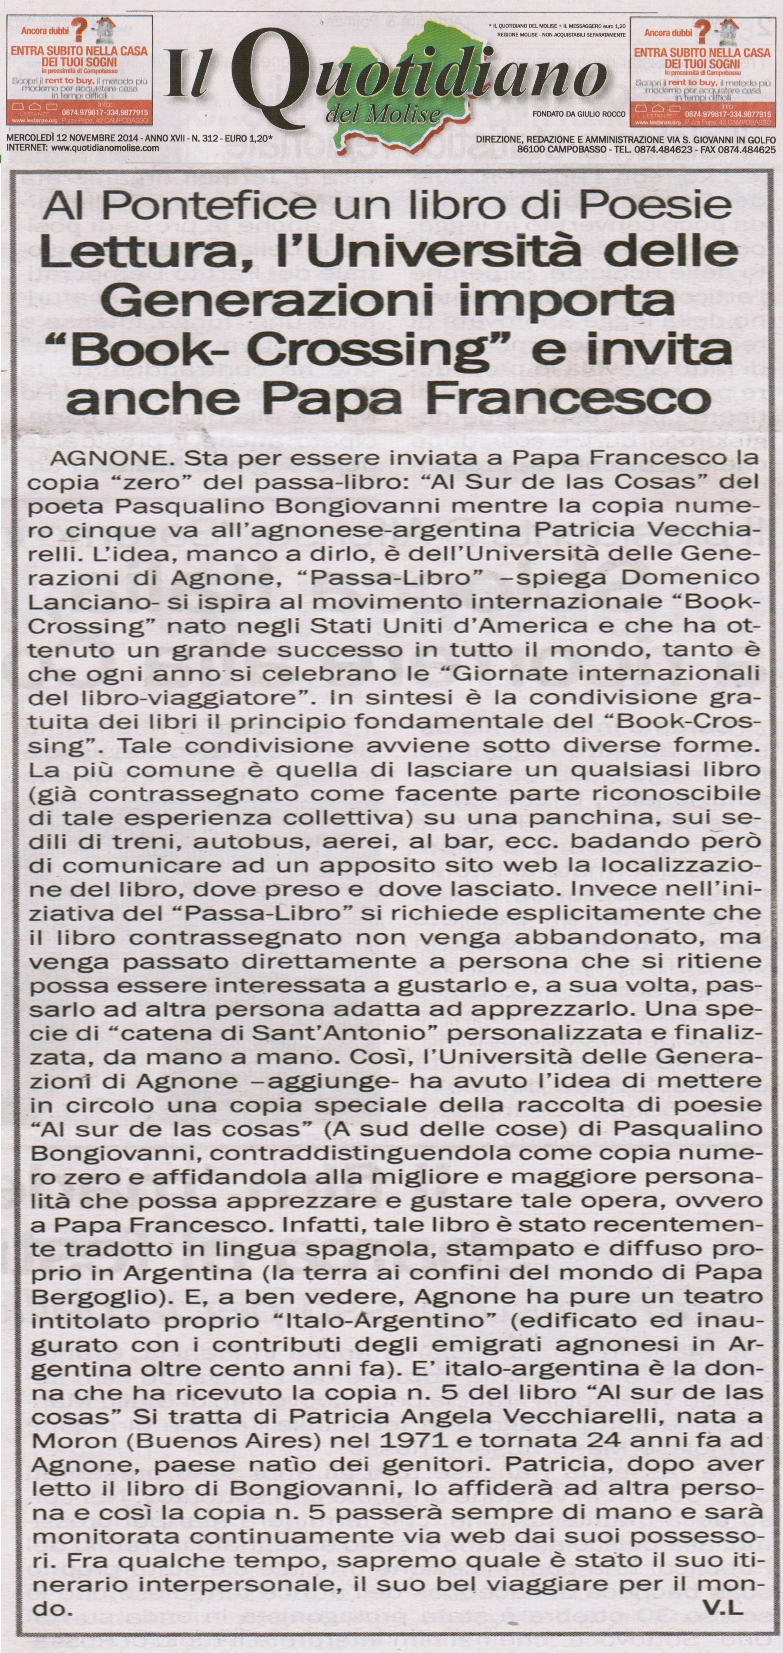 IL QUOTIDIANO DEL MOLISE